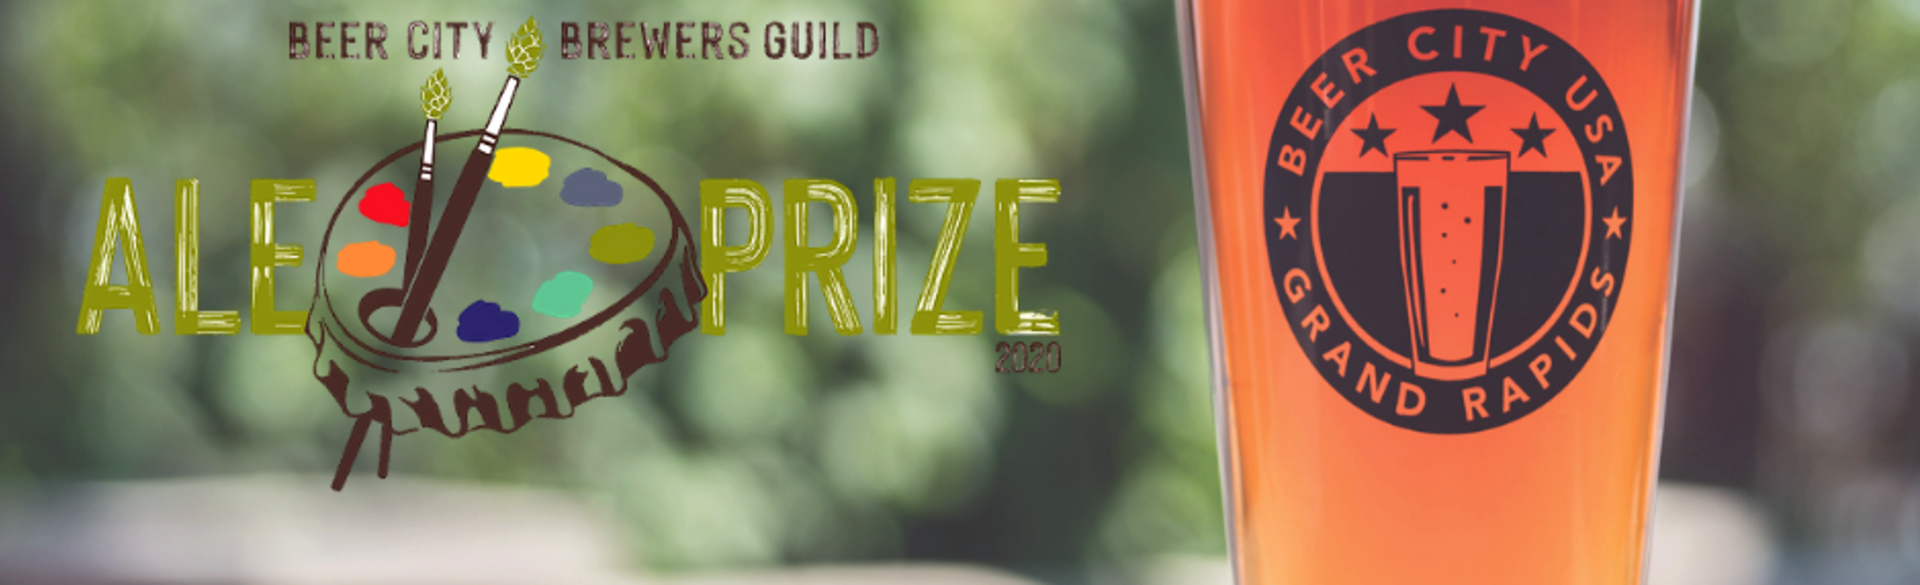 Beer City Brewers Guild Ale Prize 2020 Logo and Glass of Beer